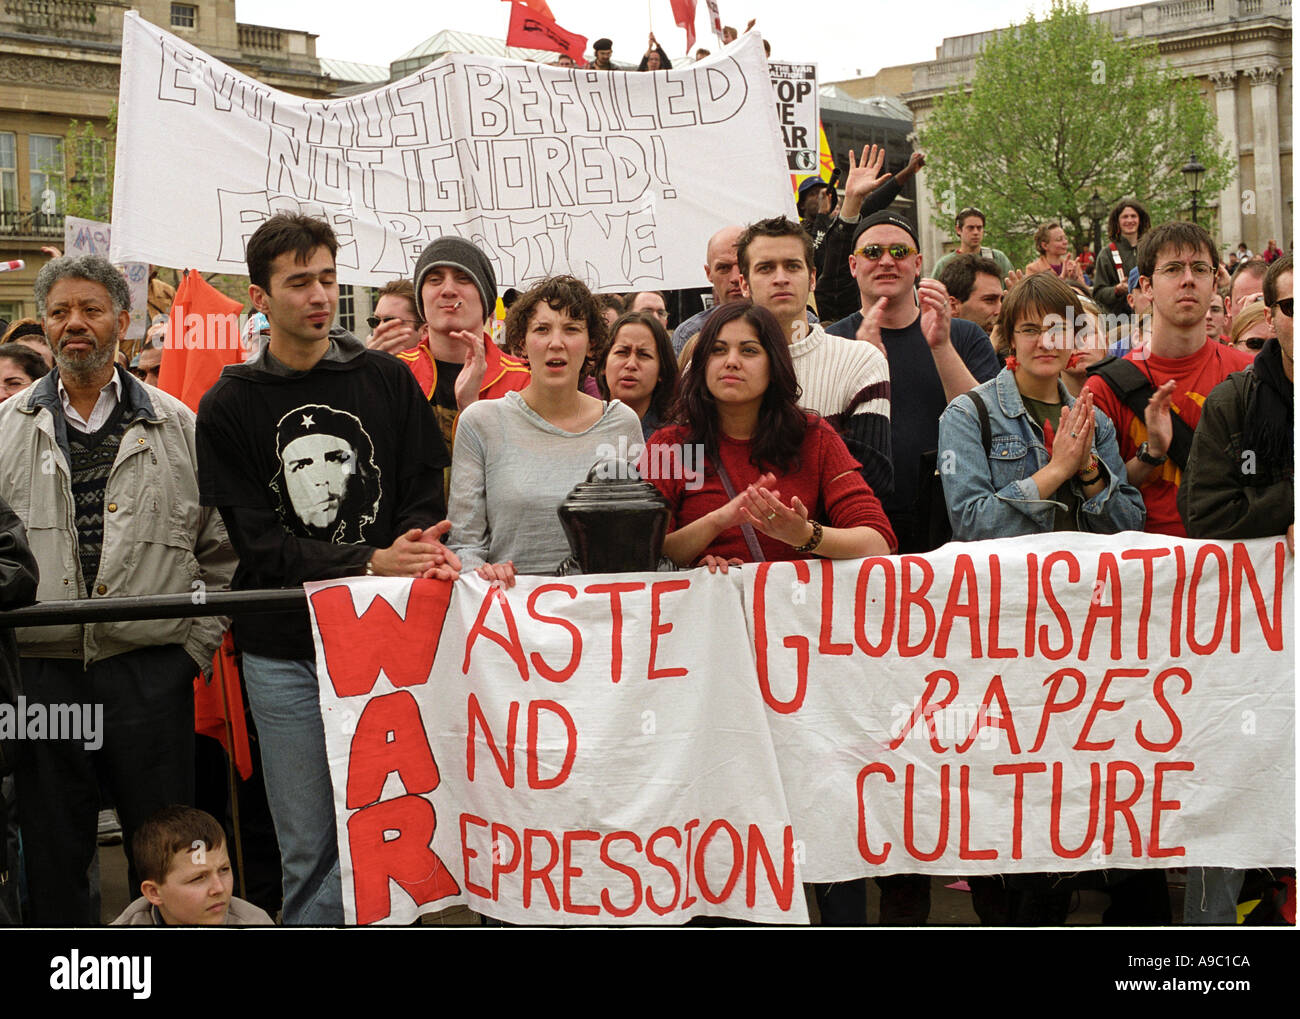 globalization and anti globalization The anti-globalization movement is critical of the globalization of capitalism the movement is also commonly referred to as the global justice movement [1], alter-globalization movement, anti-corporate globalization movement [2], or movement against neoliberal globalization.